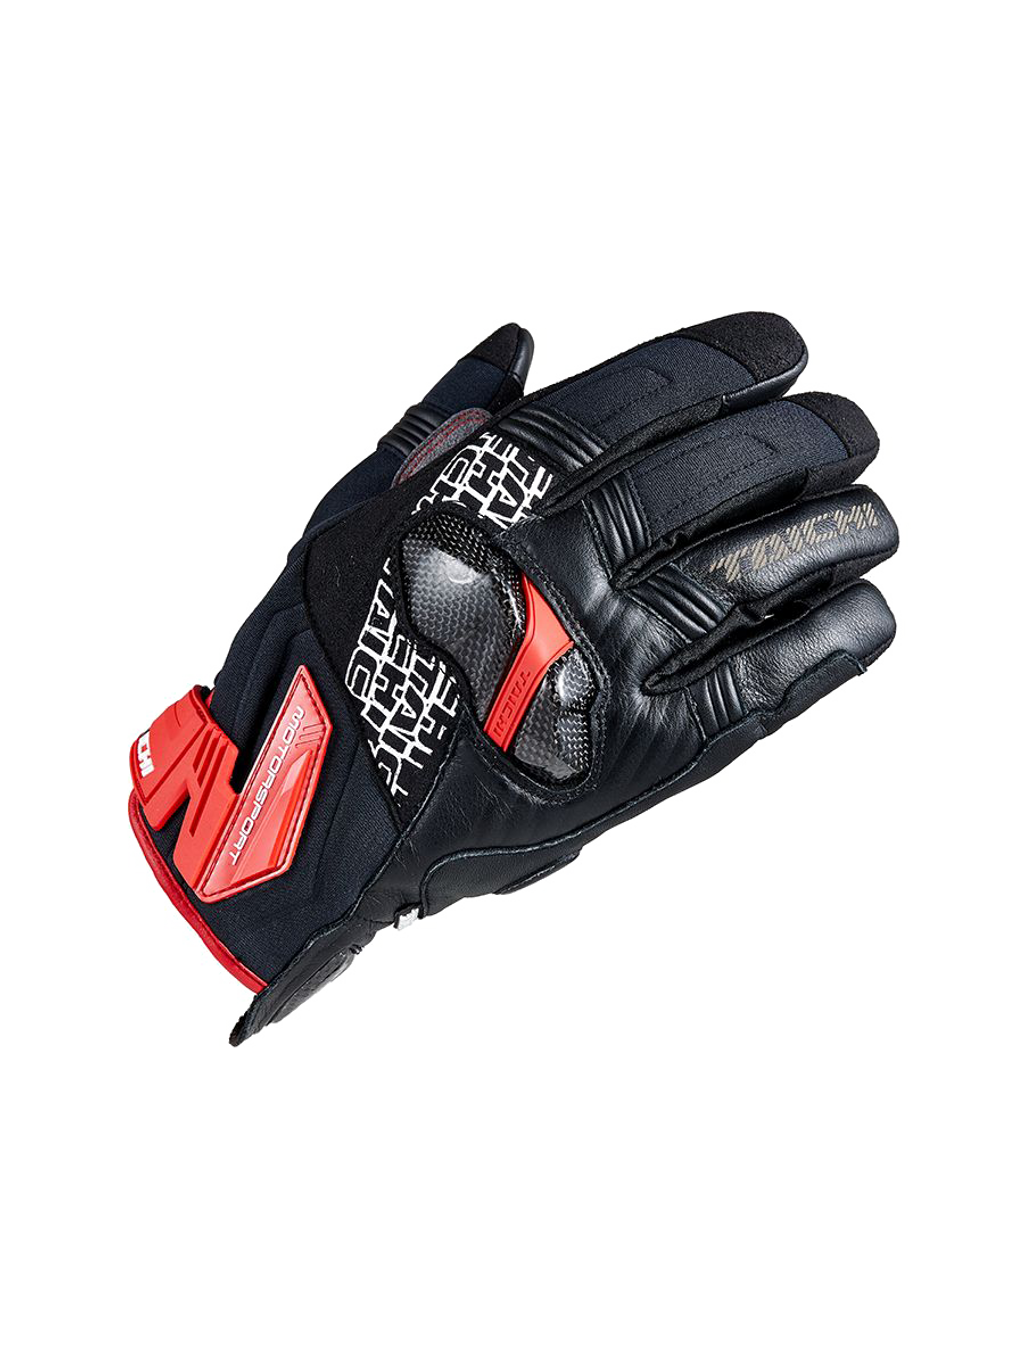 35 RS TAICHI RST635 ARMED WINTER GLOVE red.png